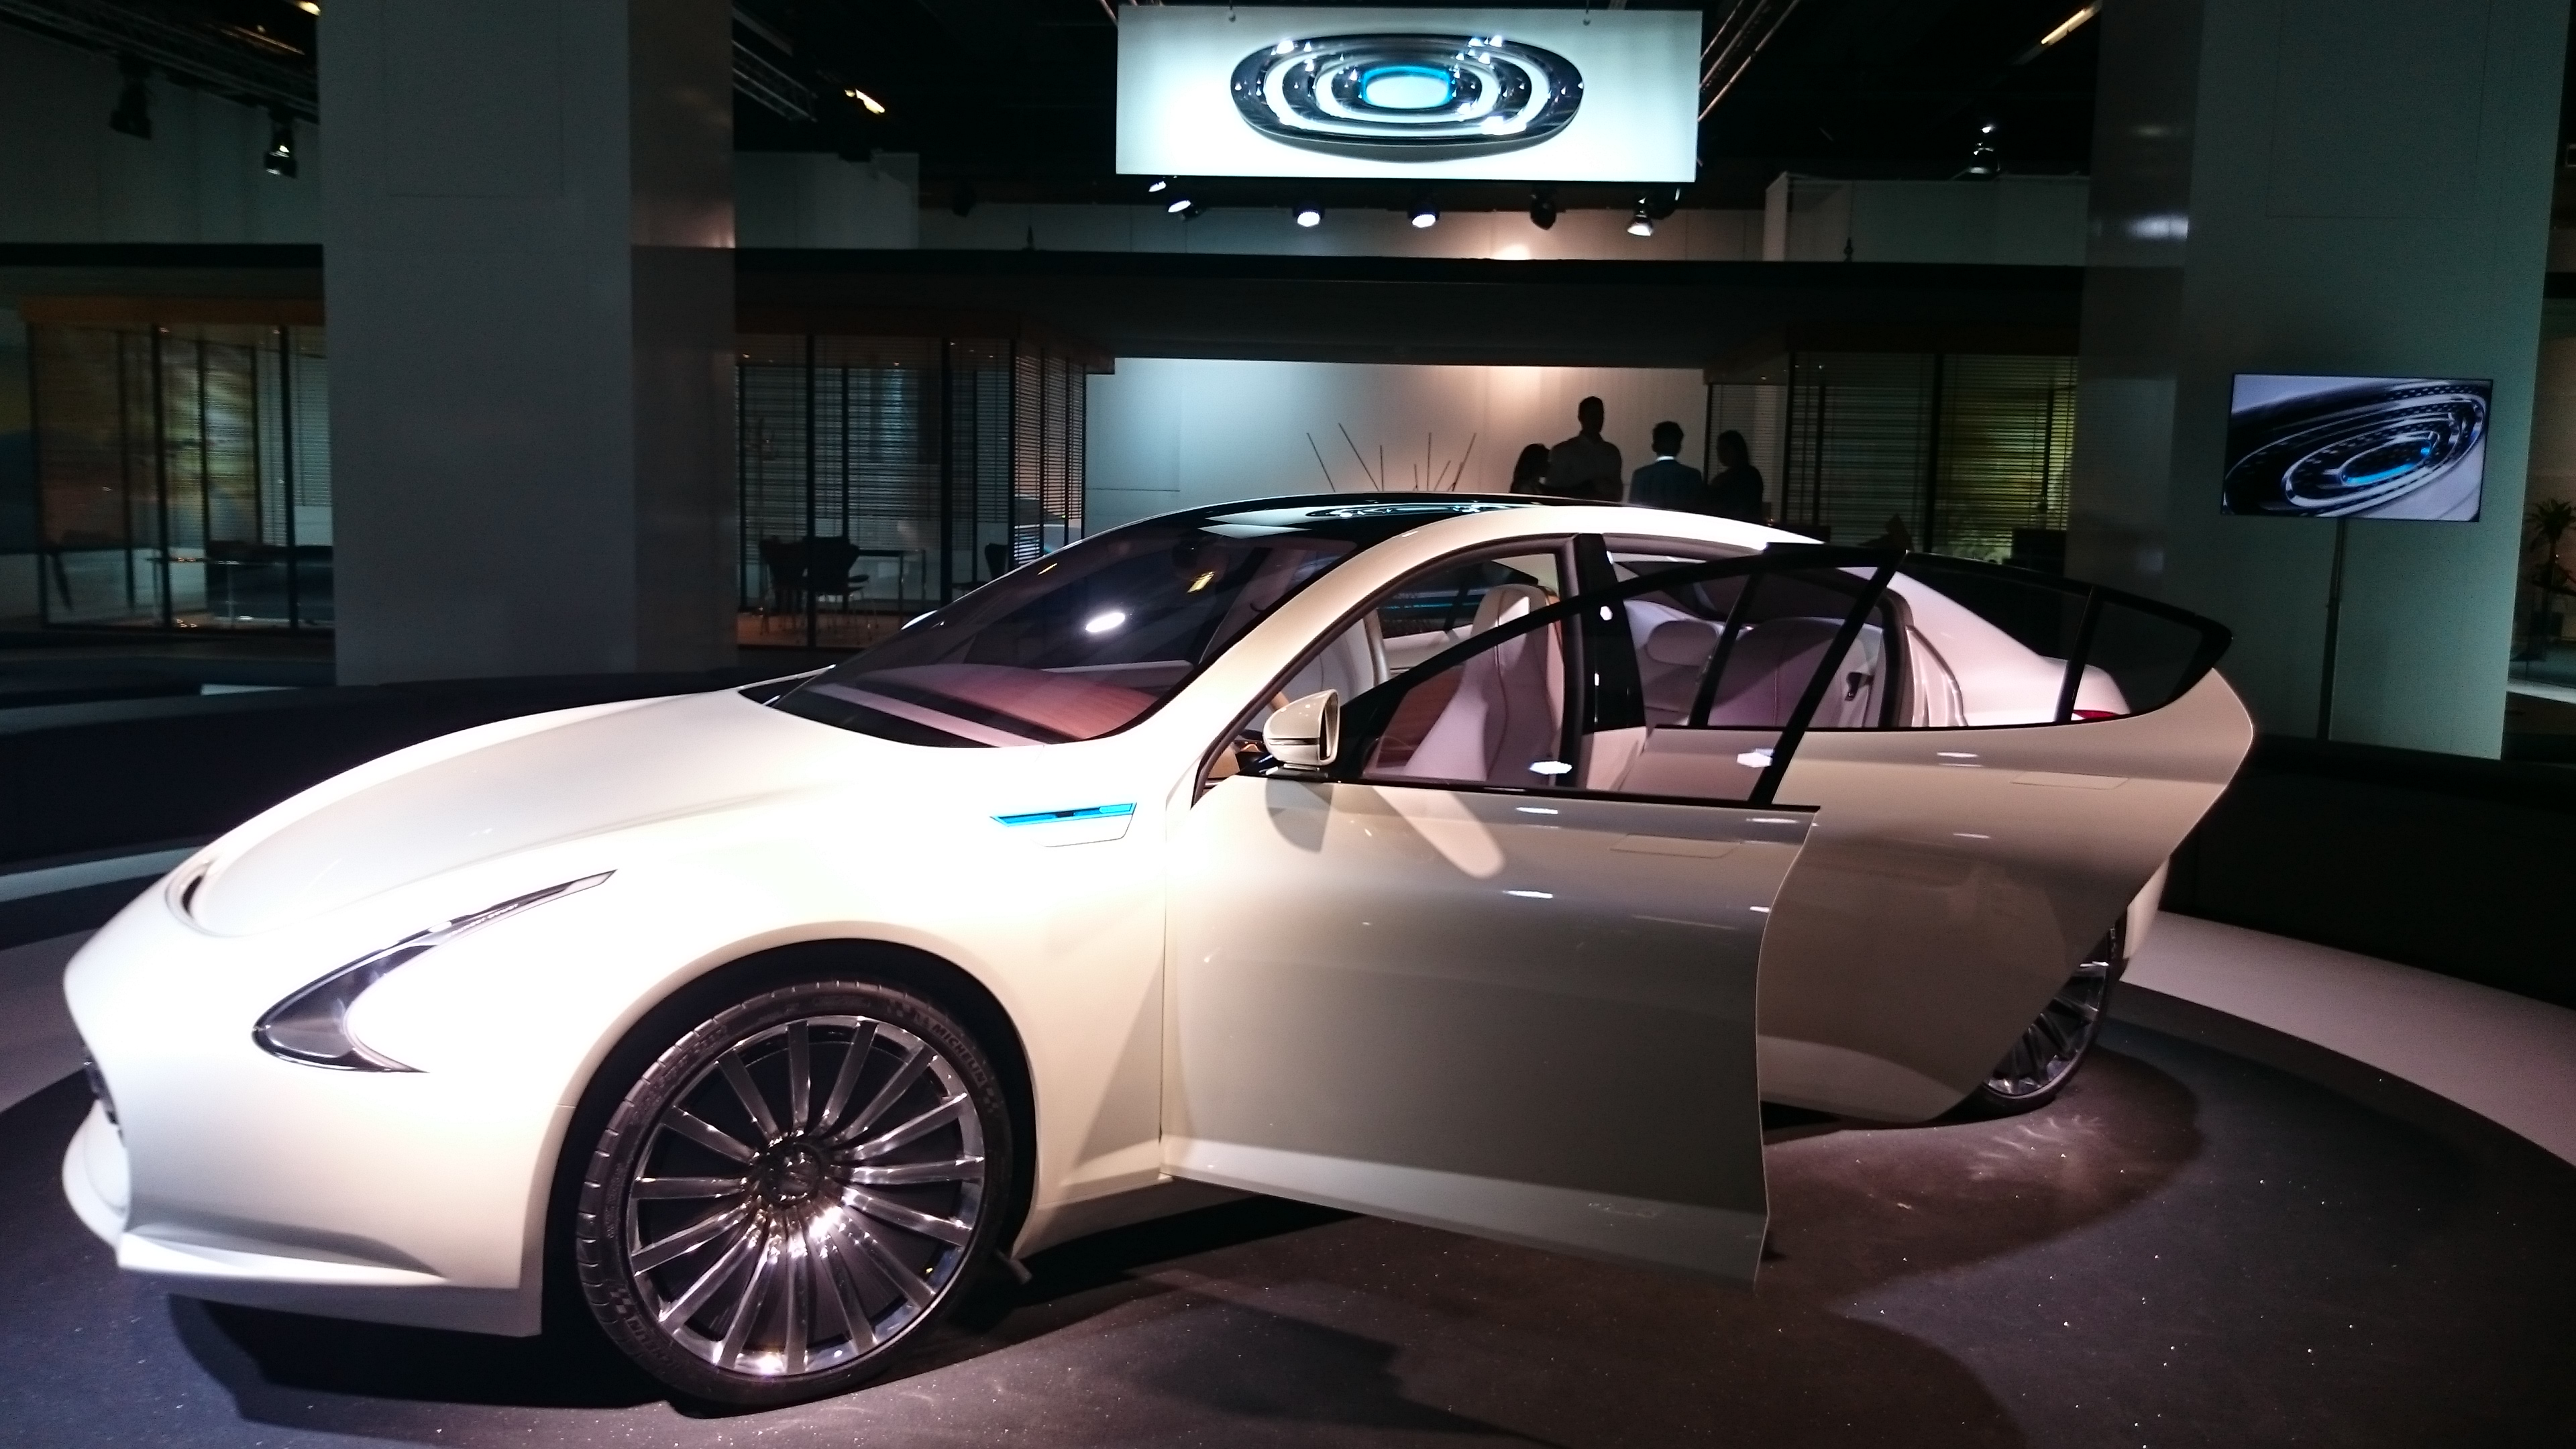 Fotos 360 del Thunder Power #VidePan en #IAA2015